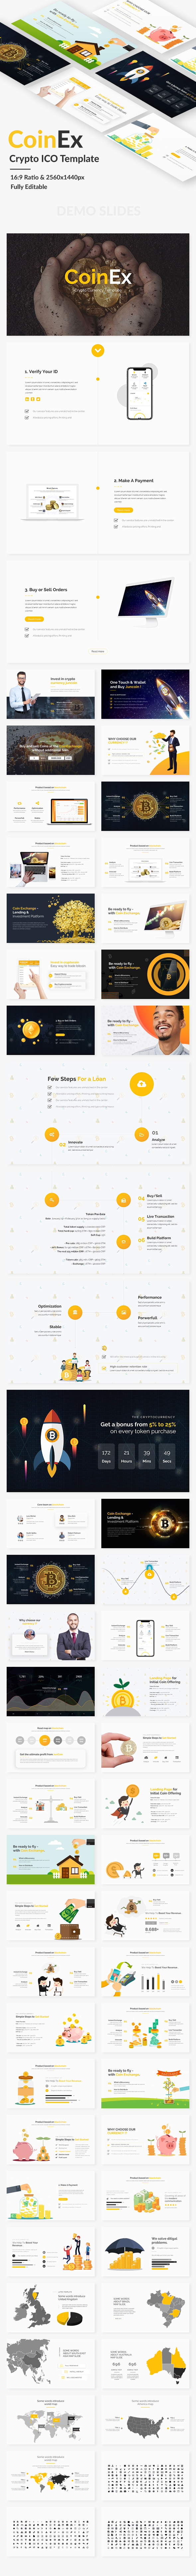 Coin Exchange and Crypto Currency Google Slide Template - Google Slides Presentation Templates